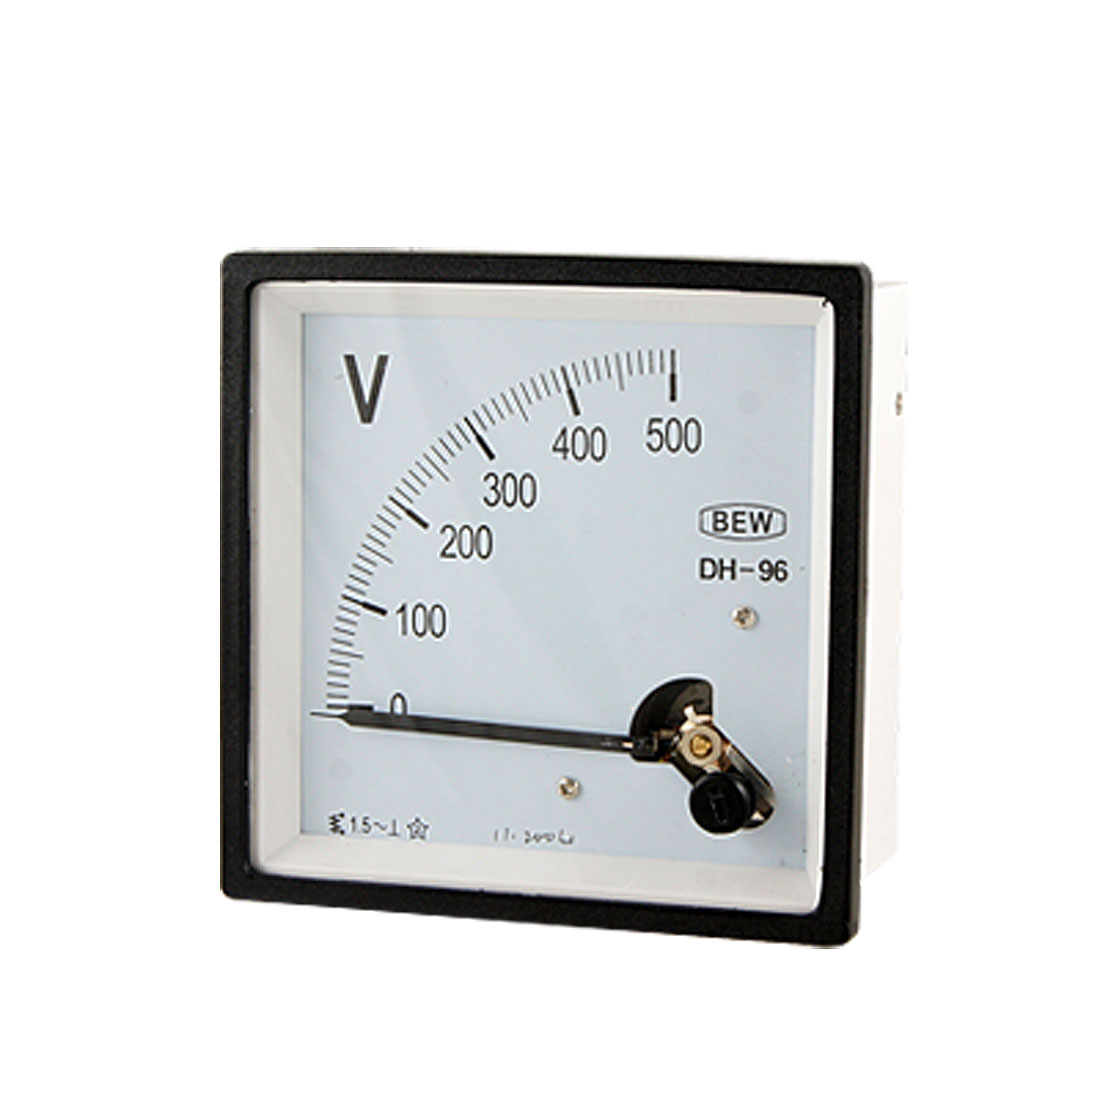 Class 1.5 Accuracy AC 500V Analog Voltage Panel Meter